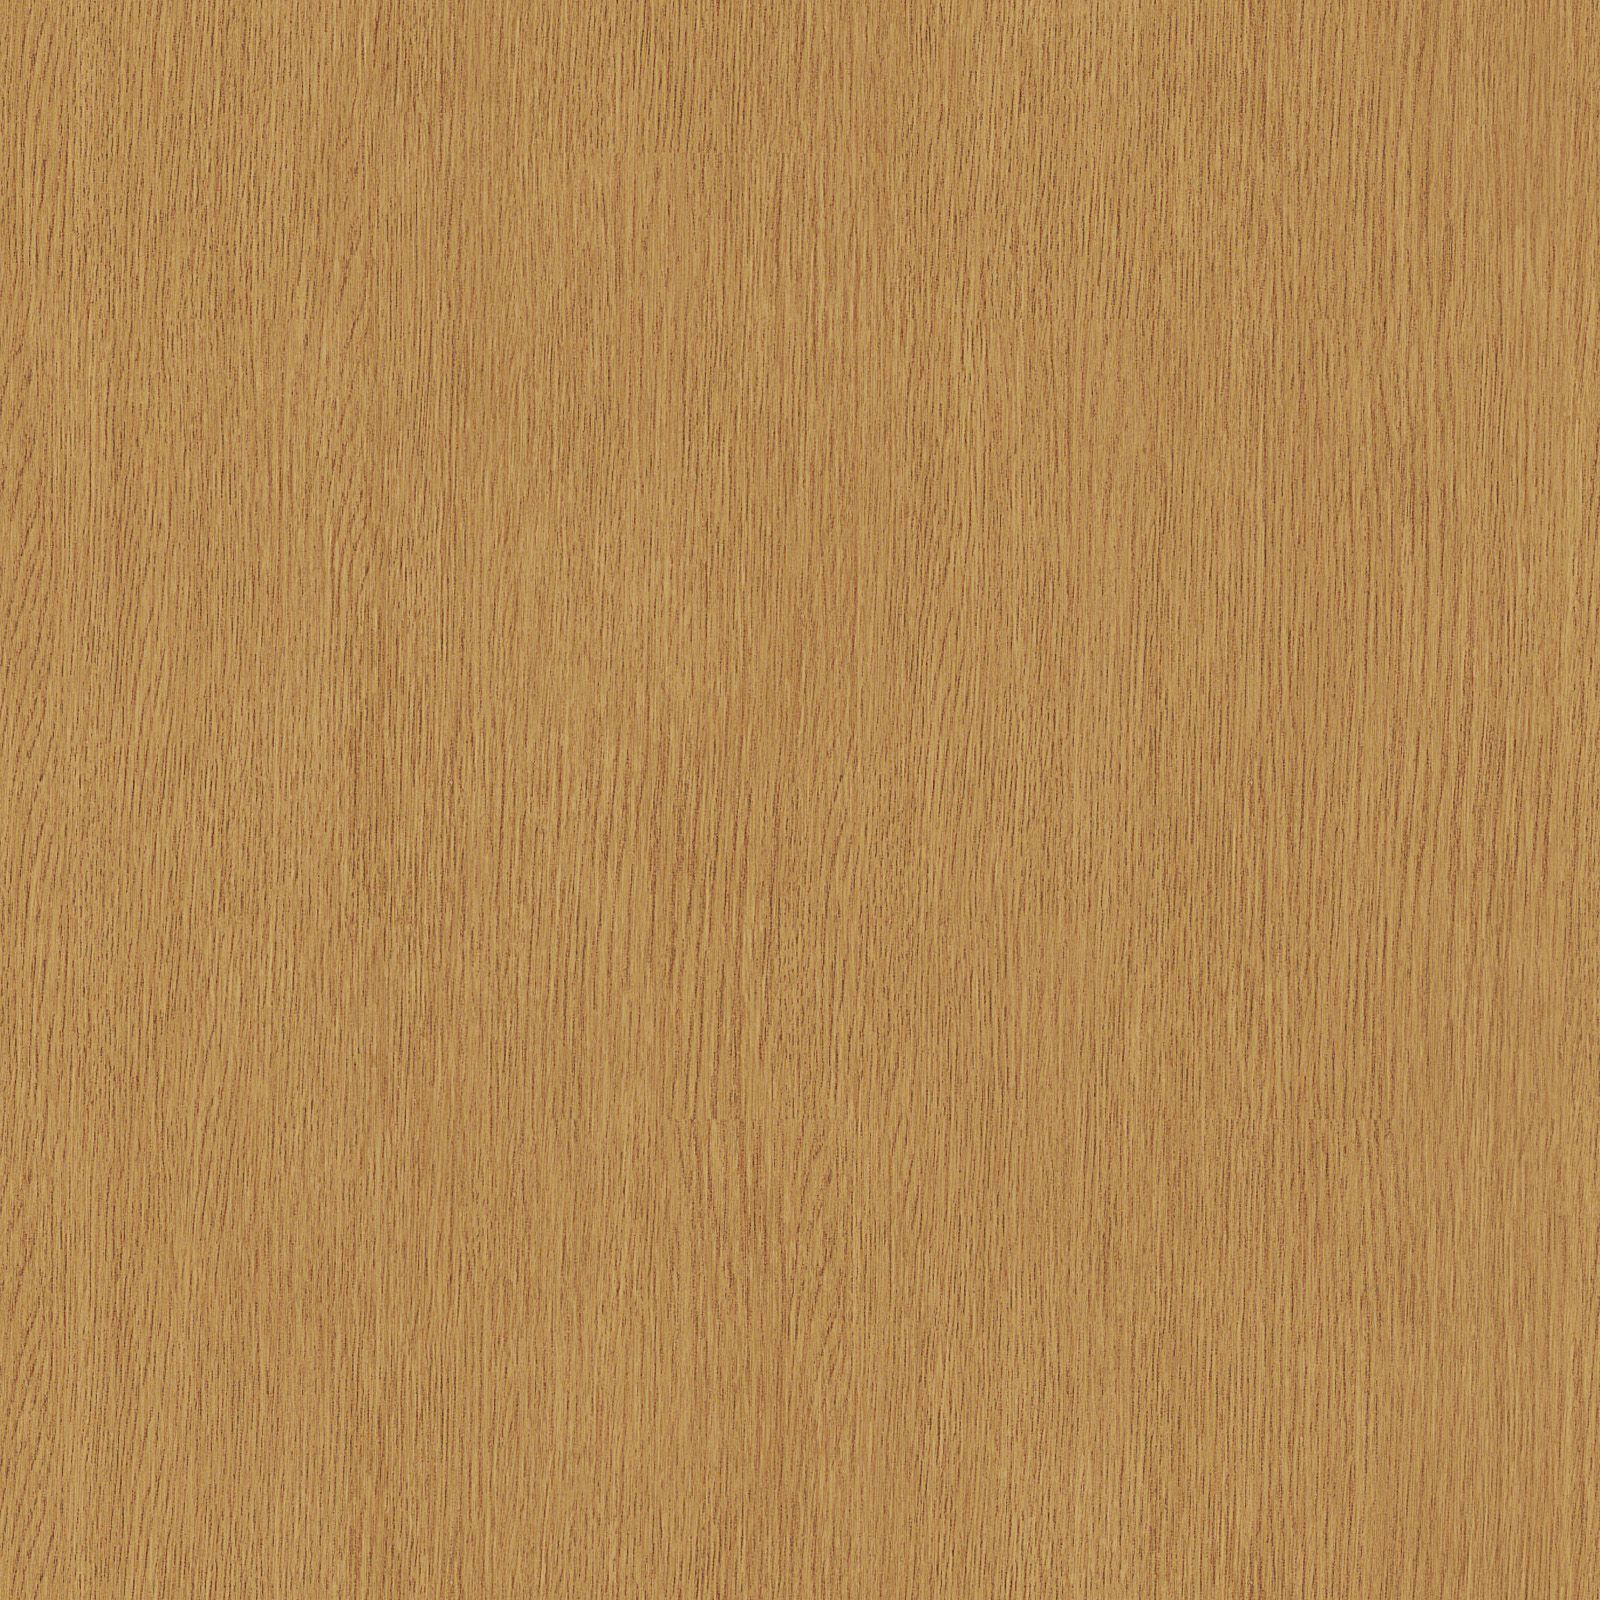 wood furniture texture hd background 9 hd wallpapers j